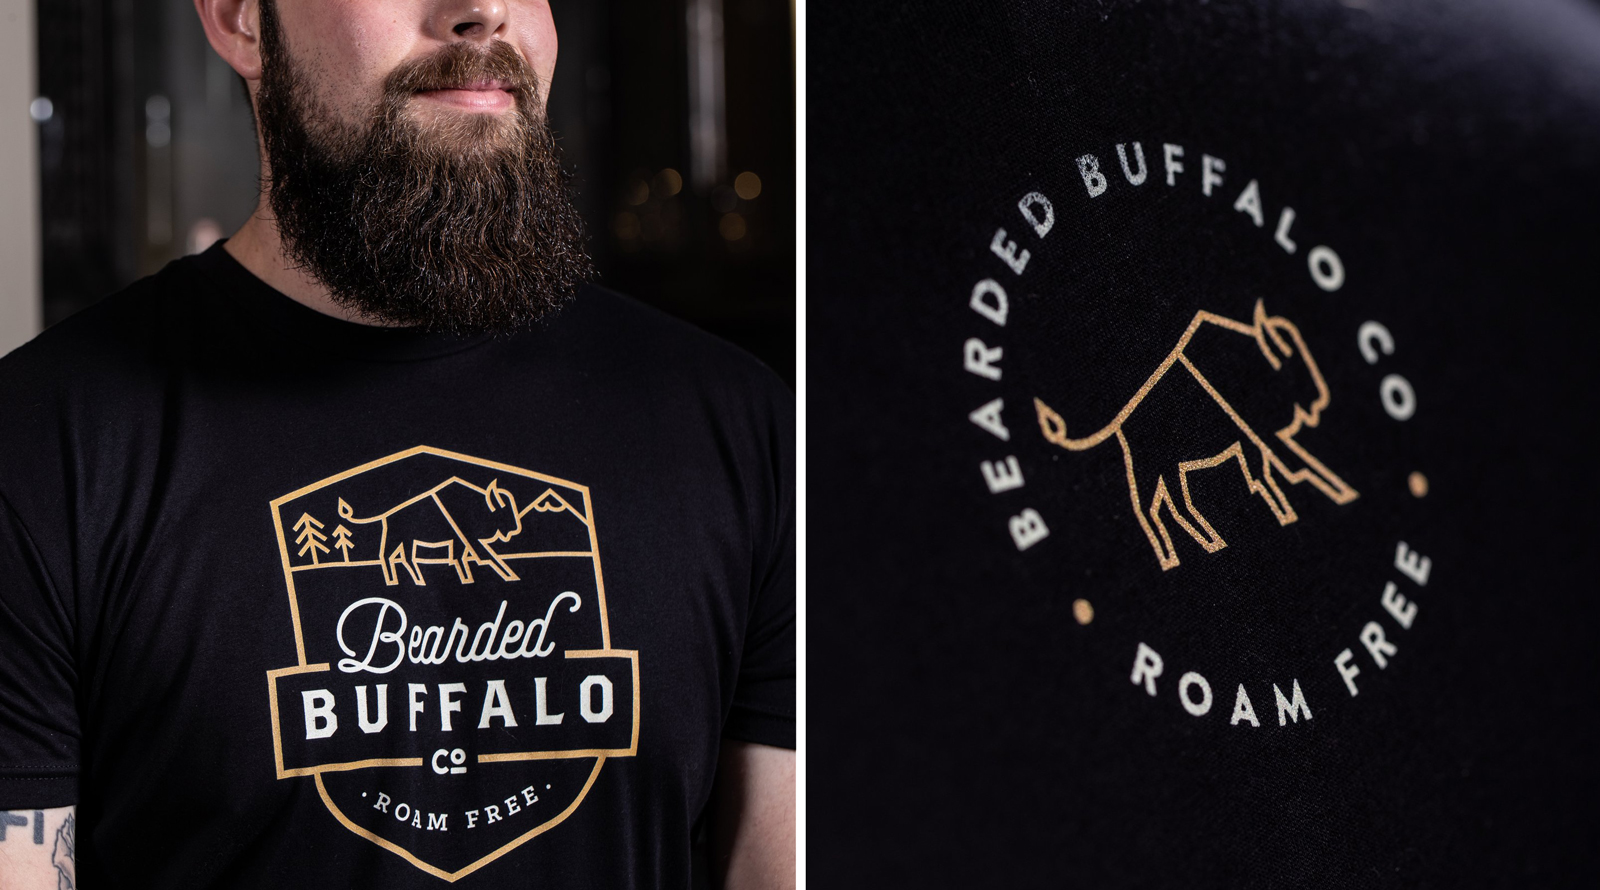 Bearded Buffalo Co Custom Tee Shirt